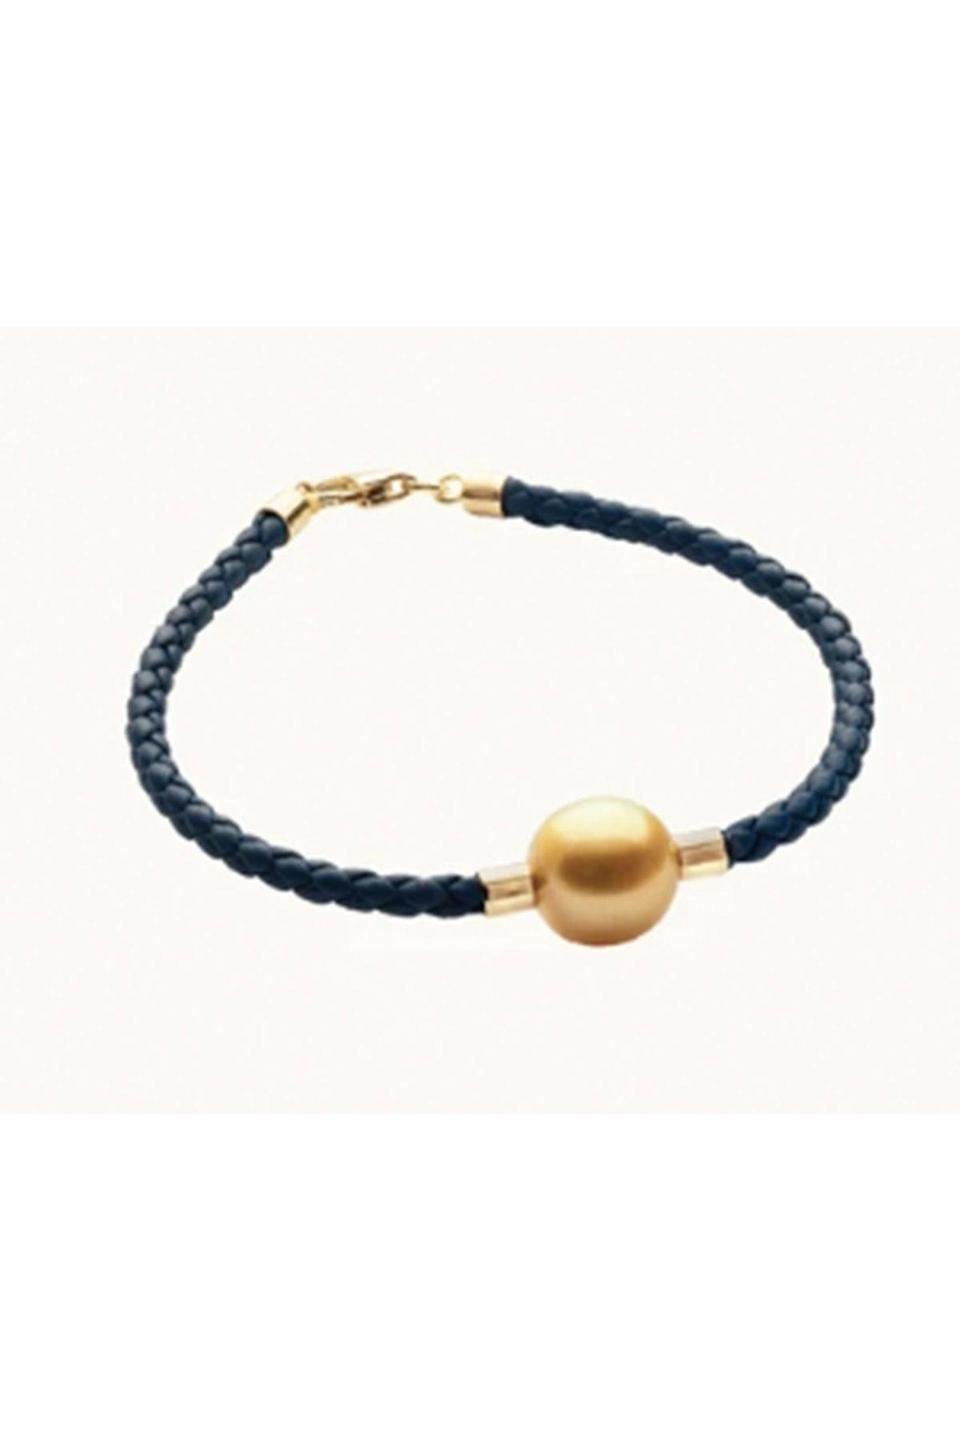 """<p><strong>Jewelmer</strong></p><p>jewelmer.com</p><p><strong>$650.00</strong></p><p><a href=""""https://us.jewelmer.com/collections/for-him/products/leather-bracelet-b"""" rel=""""nofollow noopener"""" target=""""_blank"""" data-ylk=""""slk:Shop Now"""" class=""""link rapid-noclick-resp"""">Shop Now</a></p><p>Golden pearls, found in the South Sea oyster, come by their sunny luster naturally, which makes them extremely rare. Balanced by a casual braided leather strap, this bracelet is proof that extraordinary things can be worn every day. </p>"""